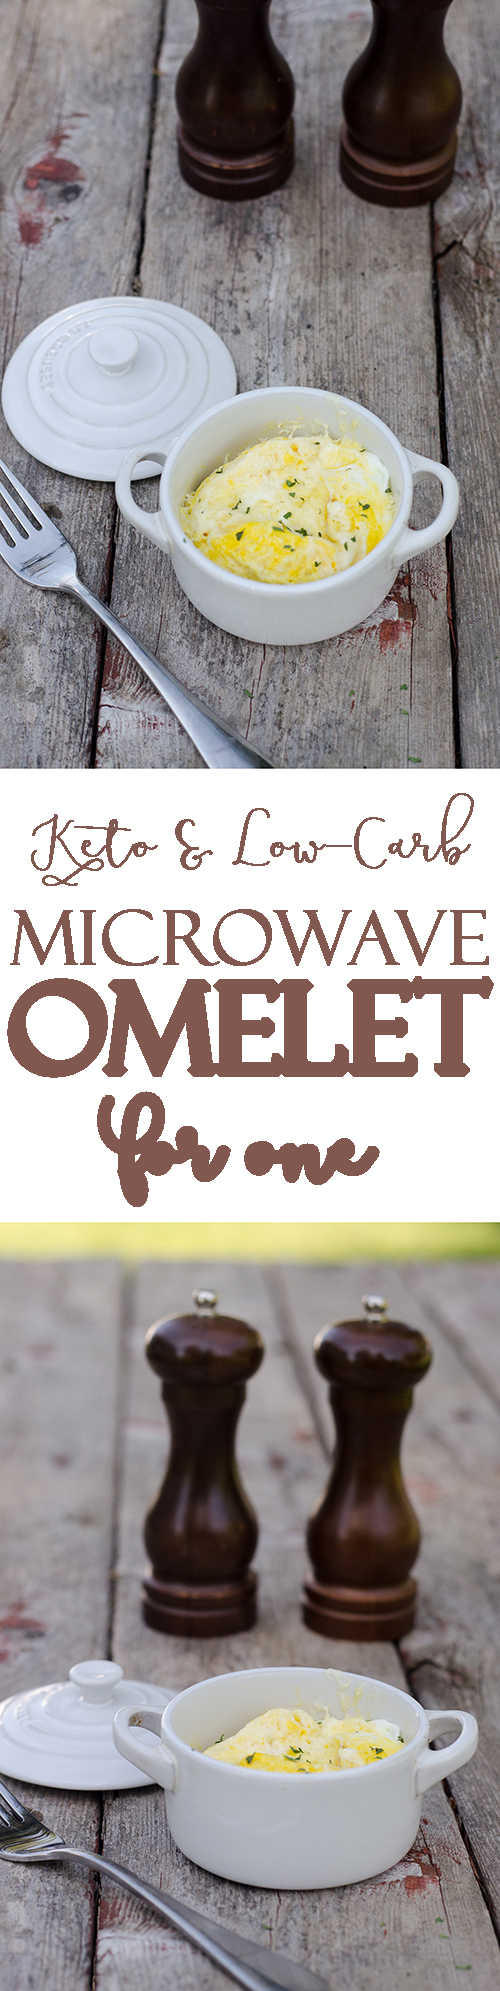 Want a quick and easy microwave omelet for one? Then you've found the perfect recipe! Simply mix two eggs, some cream and a handful of shredded cheese in a single container, pop in the microwave and wait two minutes. That's all there is to it! Gluten-free, grain-free, primal, ketogenic, low-carb.